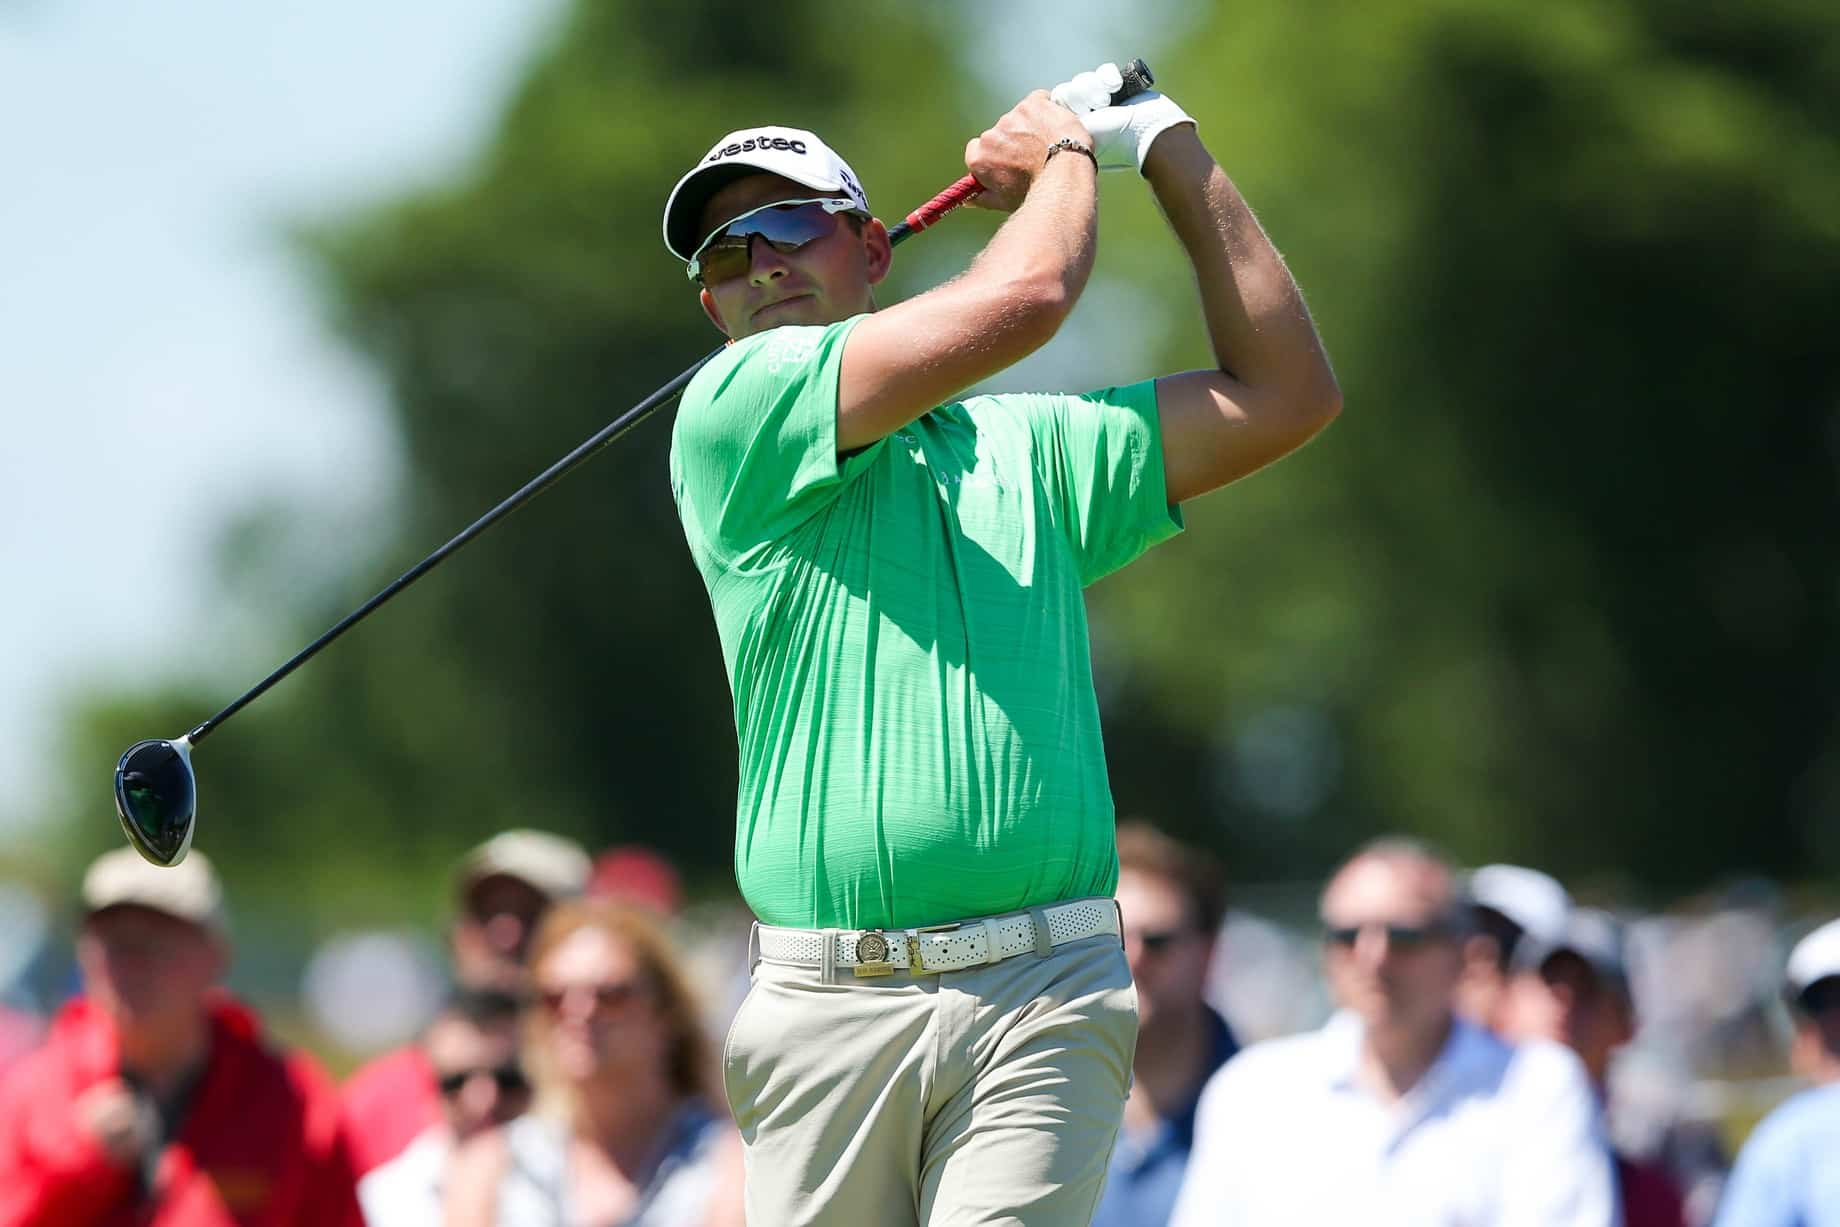 Burmester – 2nd Appearance at US Open